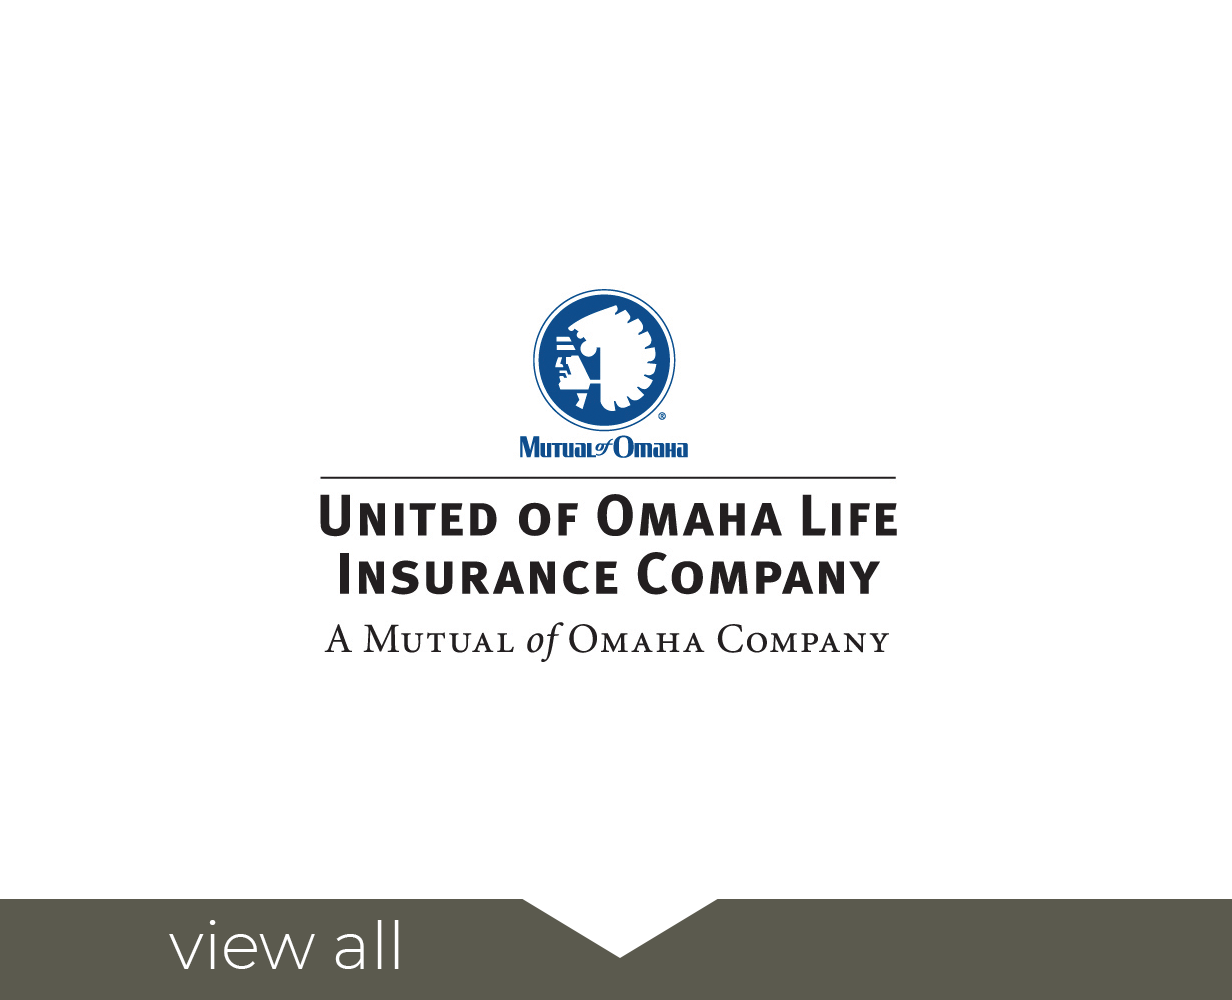 Product - United of Omaha Life Insurance Company